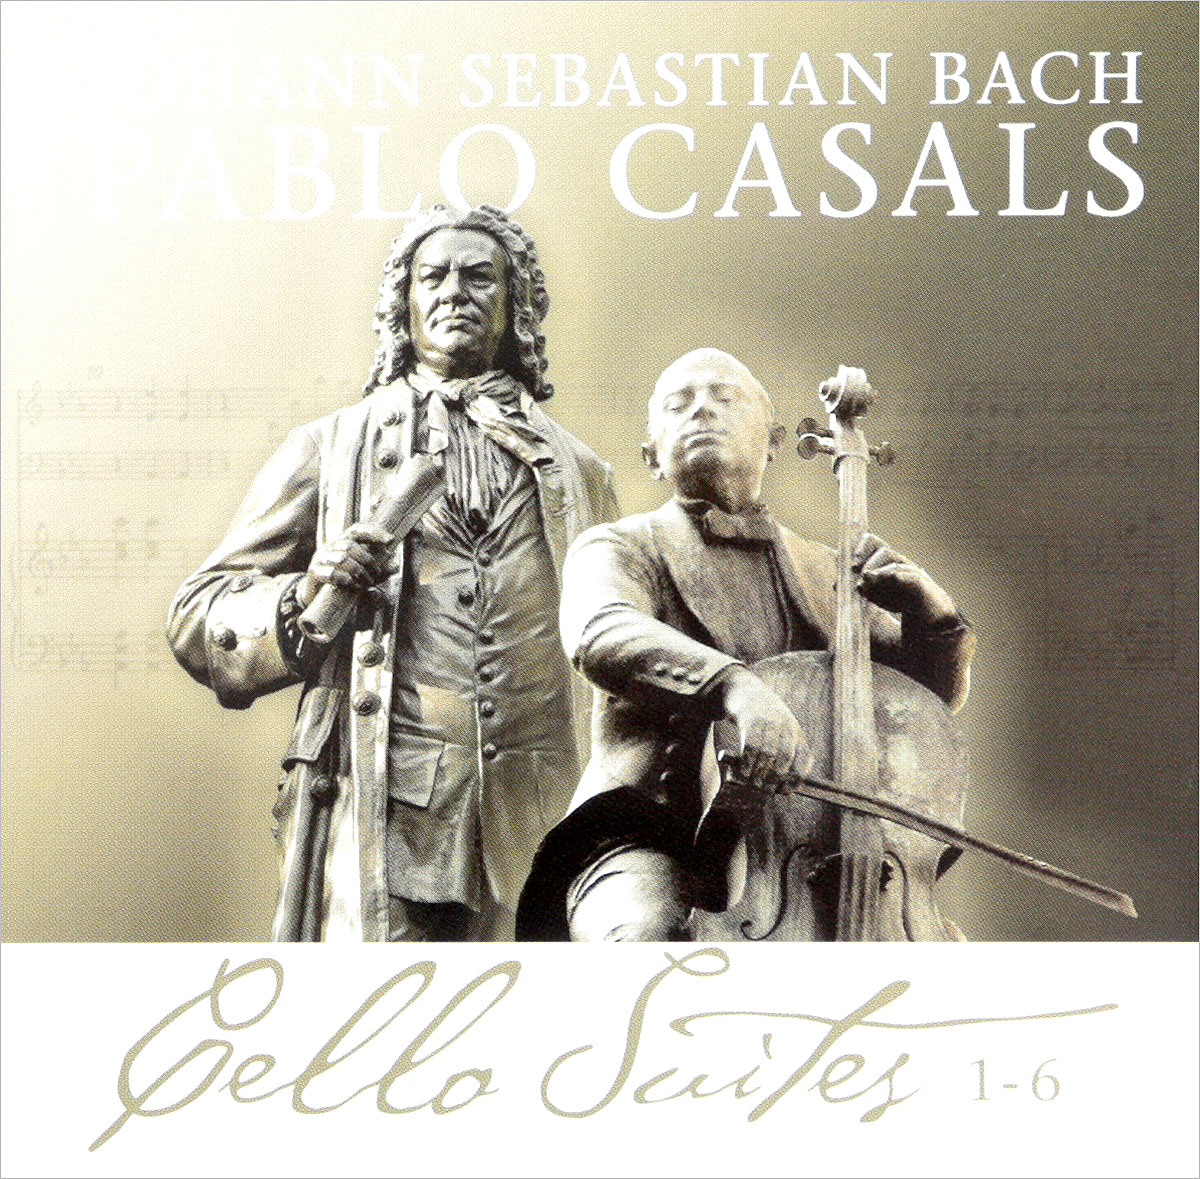 Иоганн Себастьян Бах,Пабло Касалс Johann Sebastian Bach. Pablo Casals. Cello Suites 1-6 (2 CD) andras schiff bach french suites nos 1 6 italian concert 2 cd